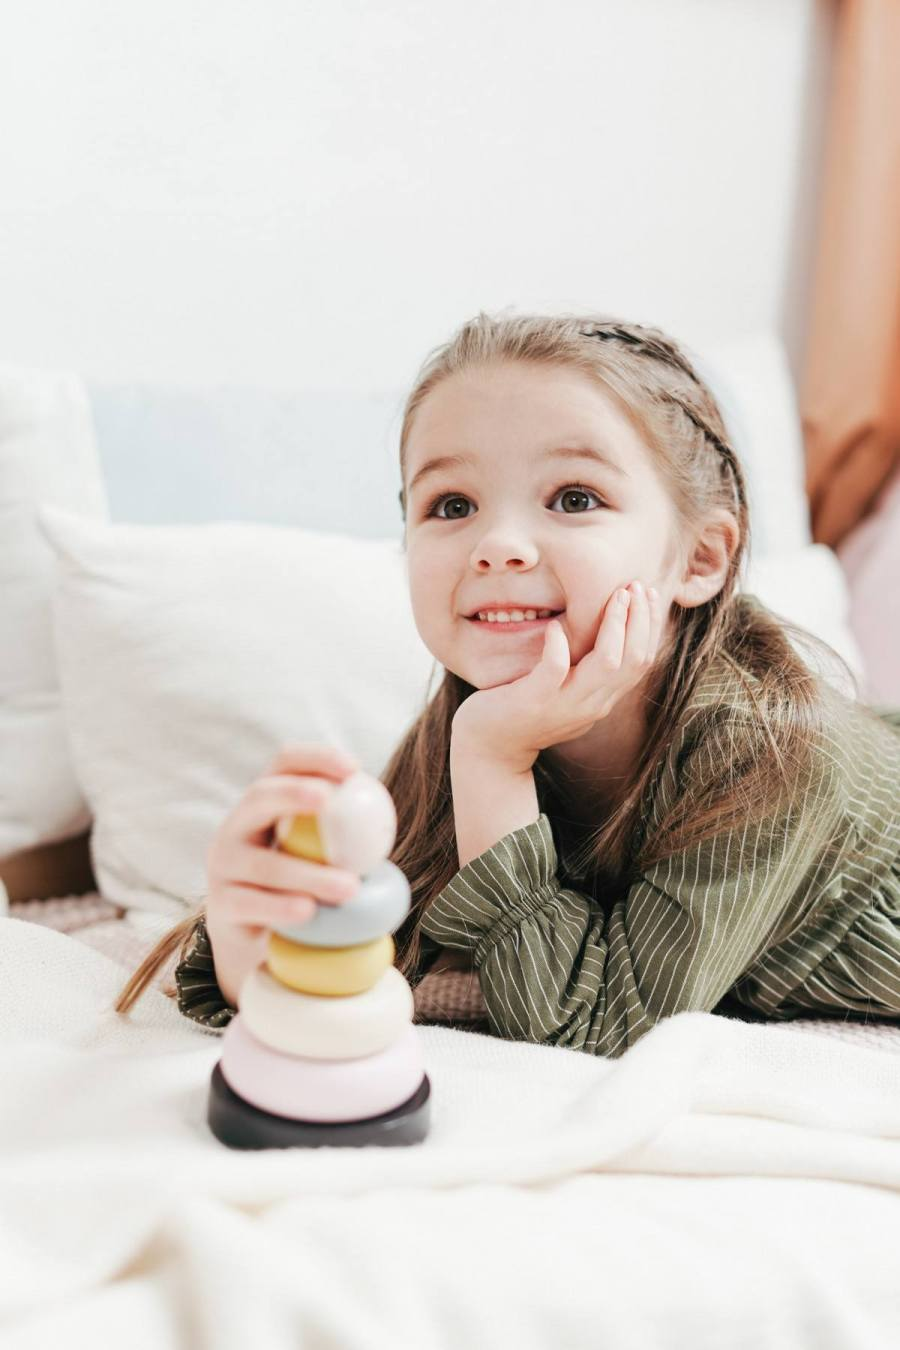 Stacking toys - Oh how I love thee! Let me count (and stack) the ways.   Don't be deceived - these seemingly simple toys pack a big punch when it comes to early learning development.